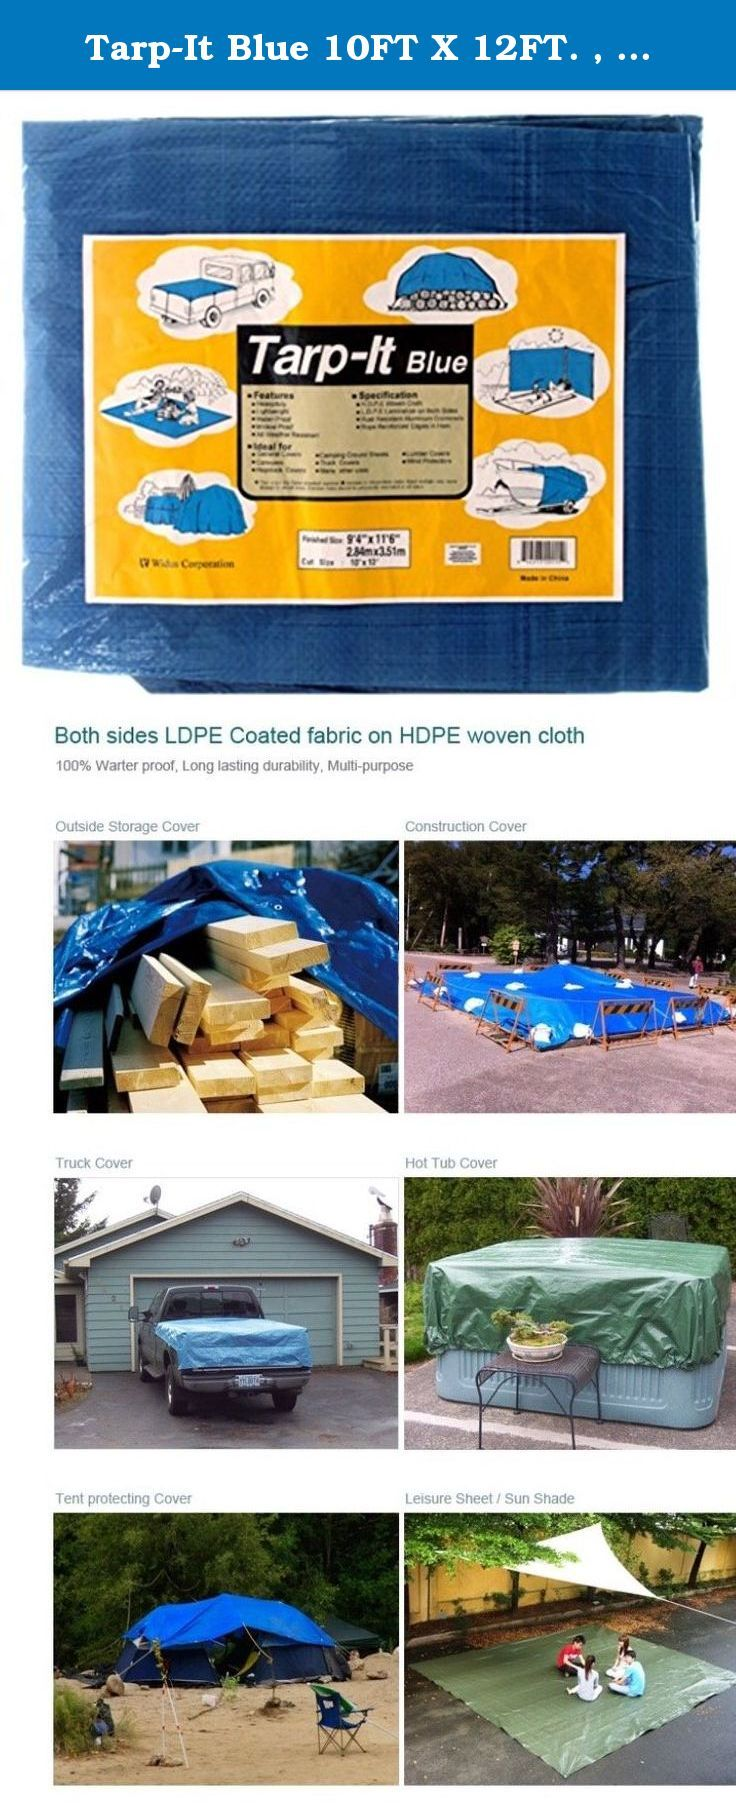 """Tarp-It Blue 10FT X 12FT. , Finished size 9'4"""" X 11'6"""". Tarp-It Blue All purpose / Weather Resistant Tarp Extra Tough water proof tarp for camping, outside storage cover, construction cover, truck cover, Hot tub cover, Leisure sheet, Sun shade, Tent protecting cover and many more uses, won't crack under freezing temperatures ."""